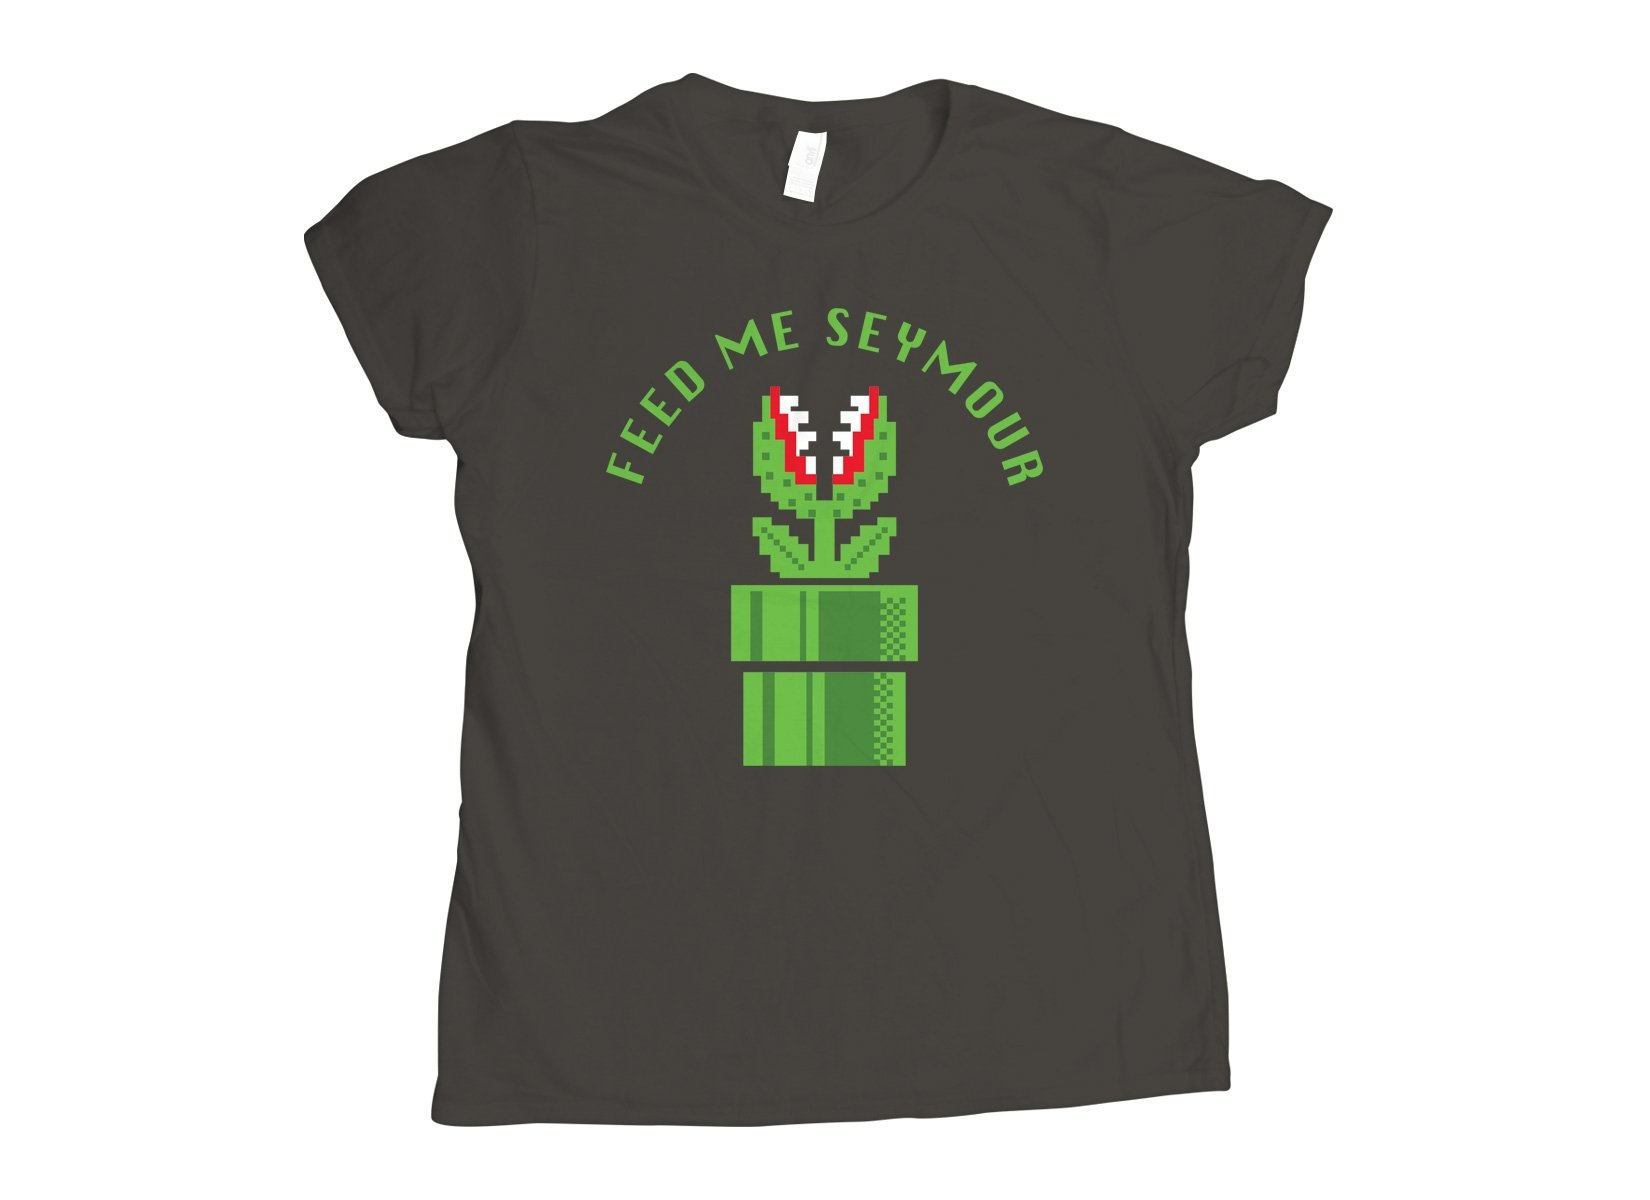 Feed Me Seymour on Womens T-Shirt